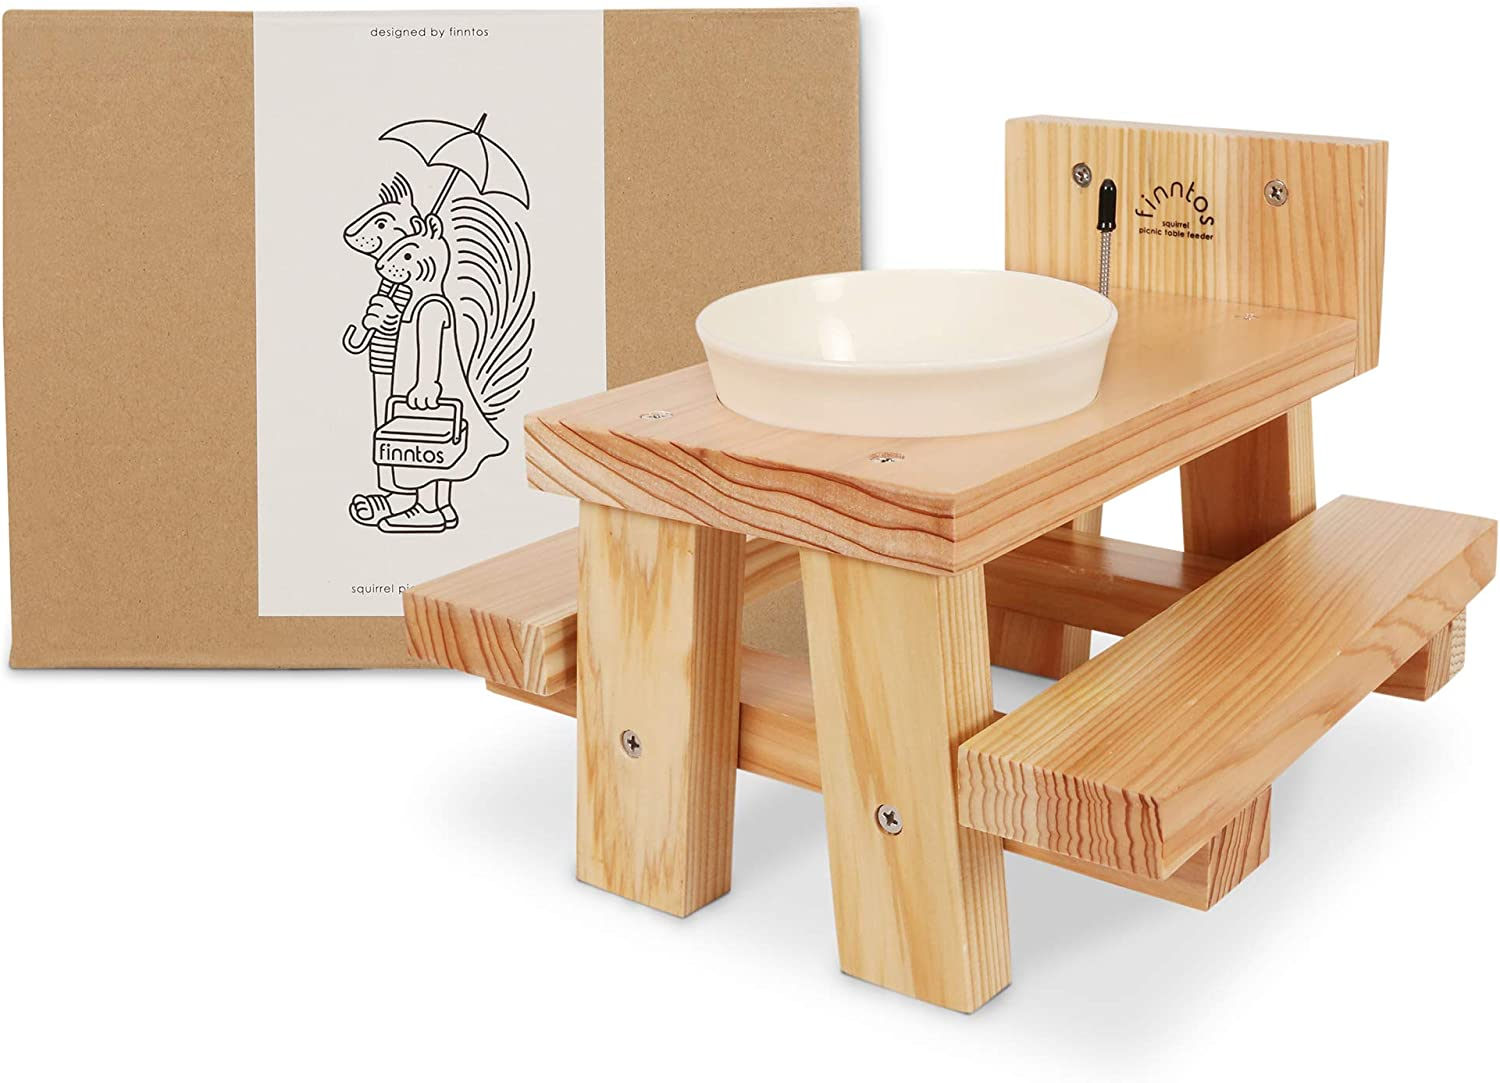 Squirrel picnic table feeder for outdoors, corn cob holder, bowl for squirrel food, peanuts, nuts and water, Easy to install. Great for gifts. Built strong, 100% FSC Certified wood responsibly made.